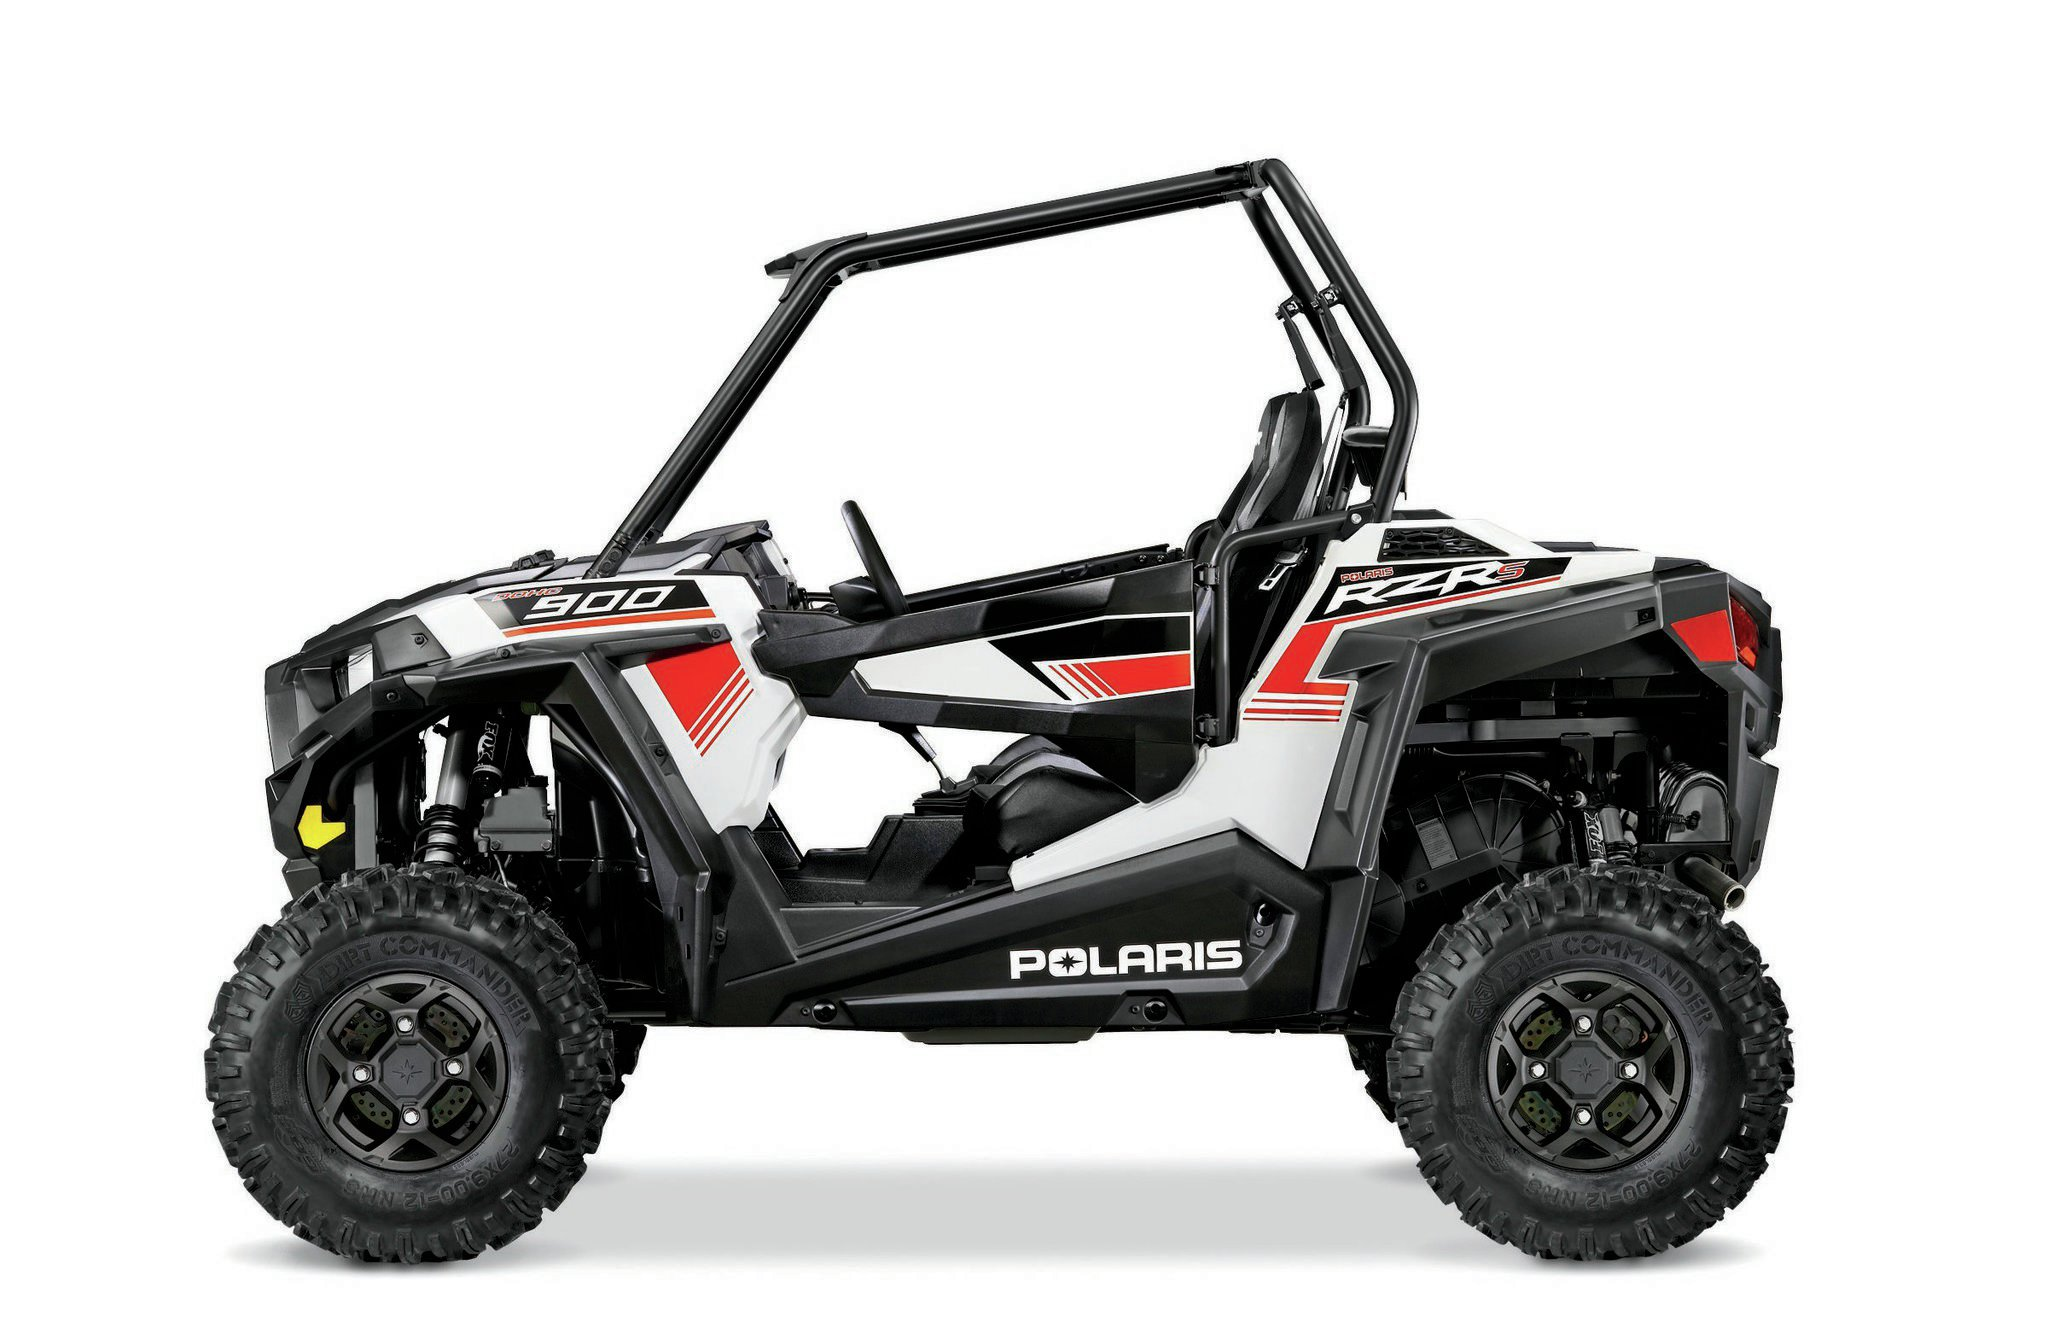 Half doors come standard with full doors as an accessory on the RZR S. Four-spoke aluminum wheels are standard along with premium.